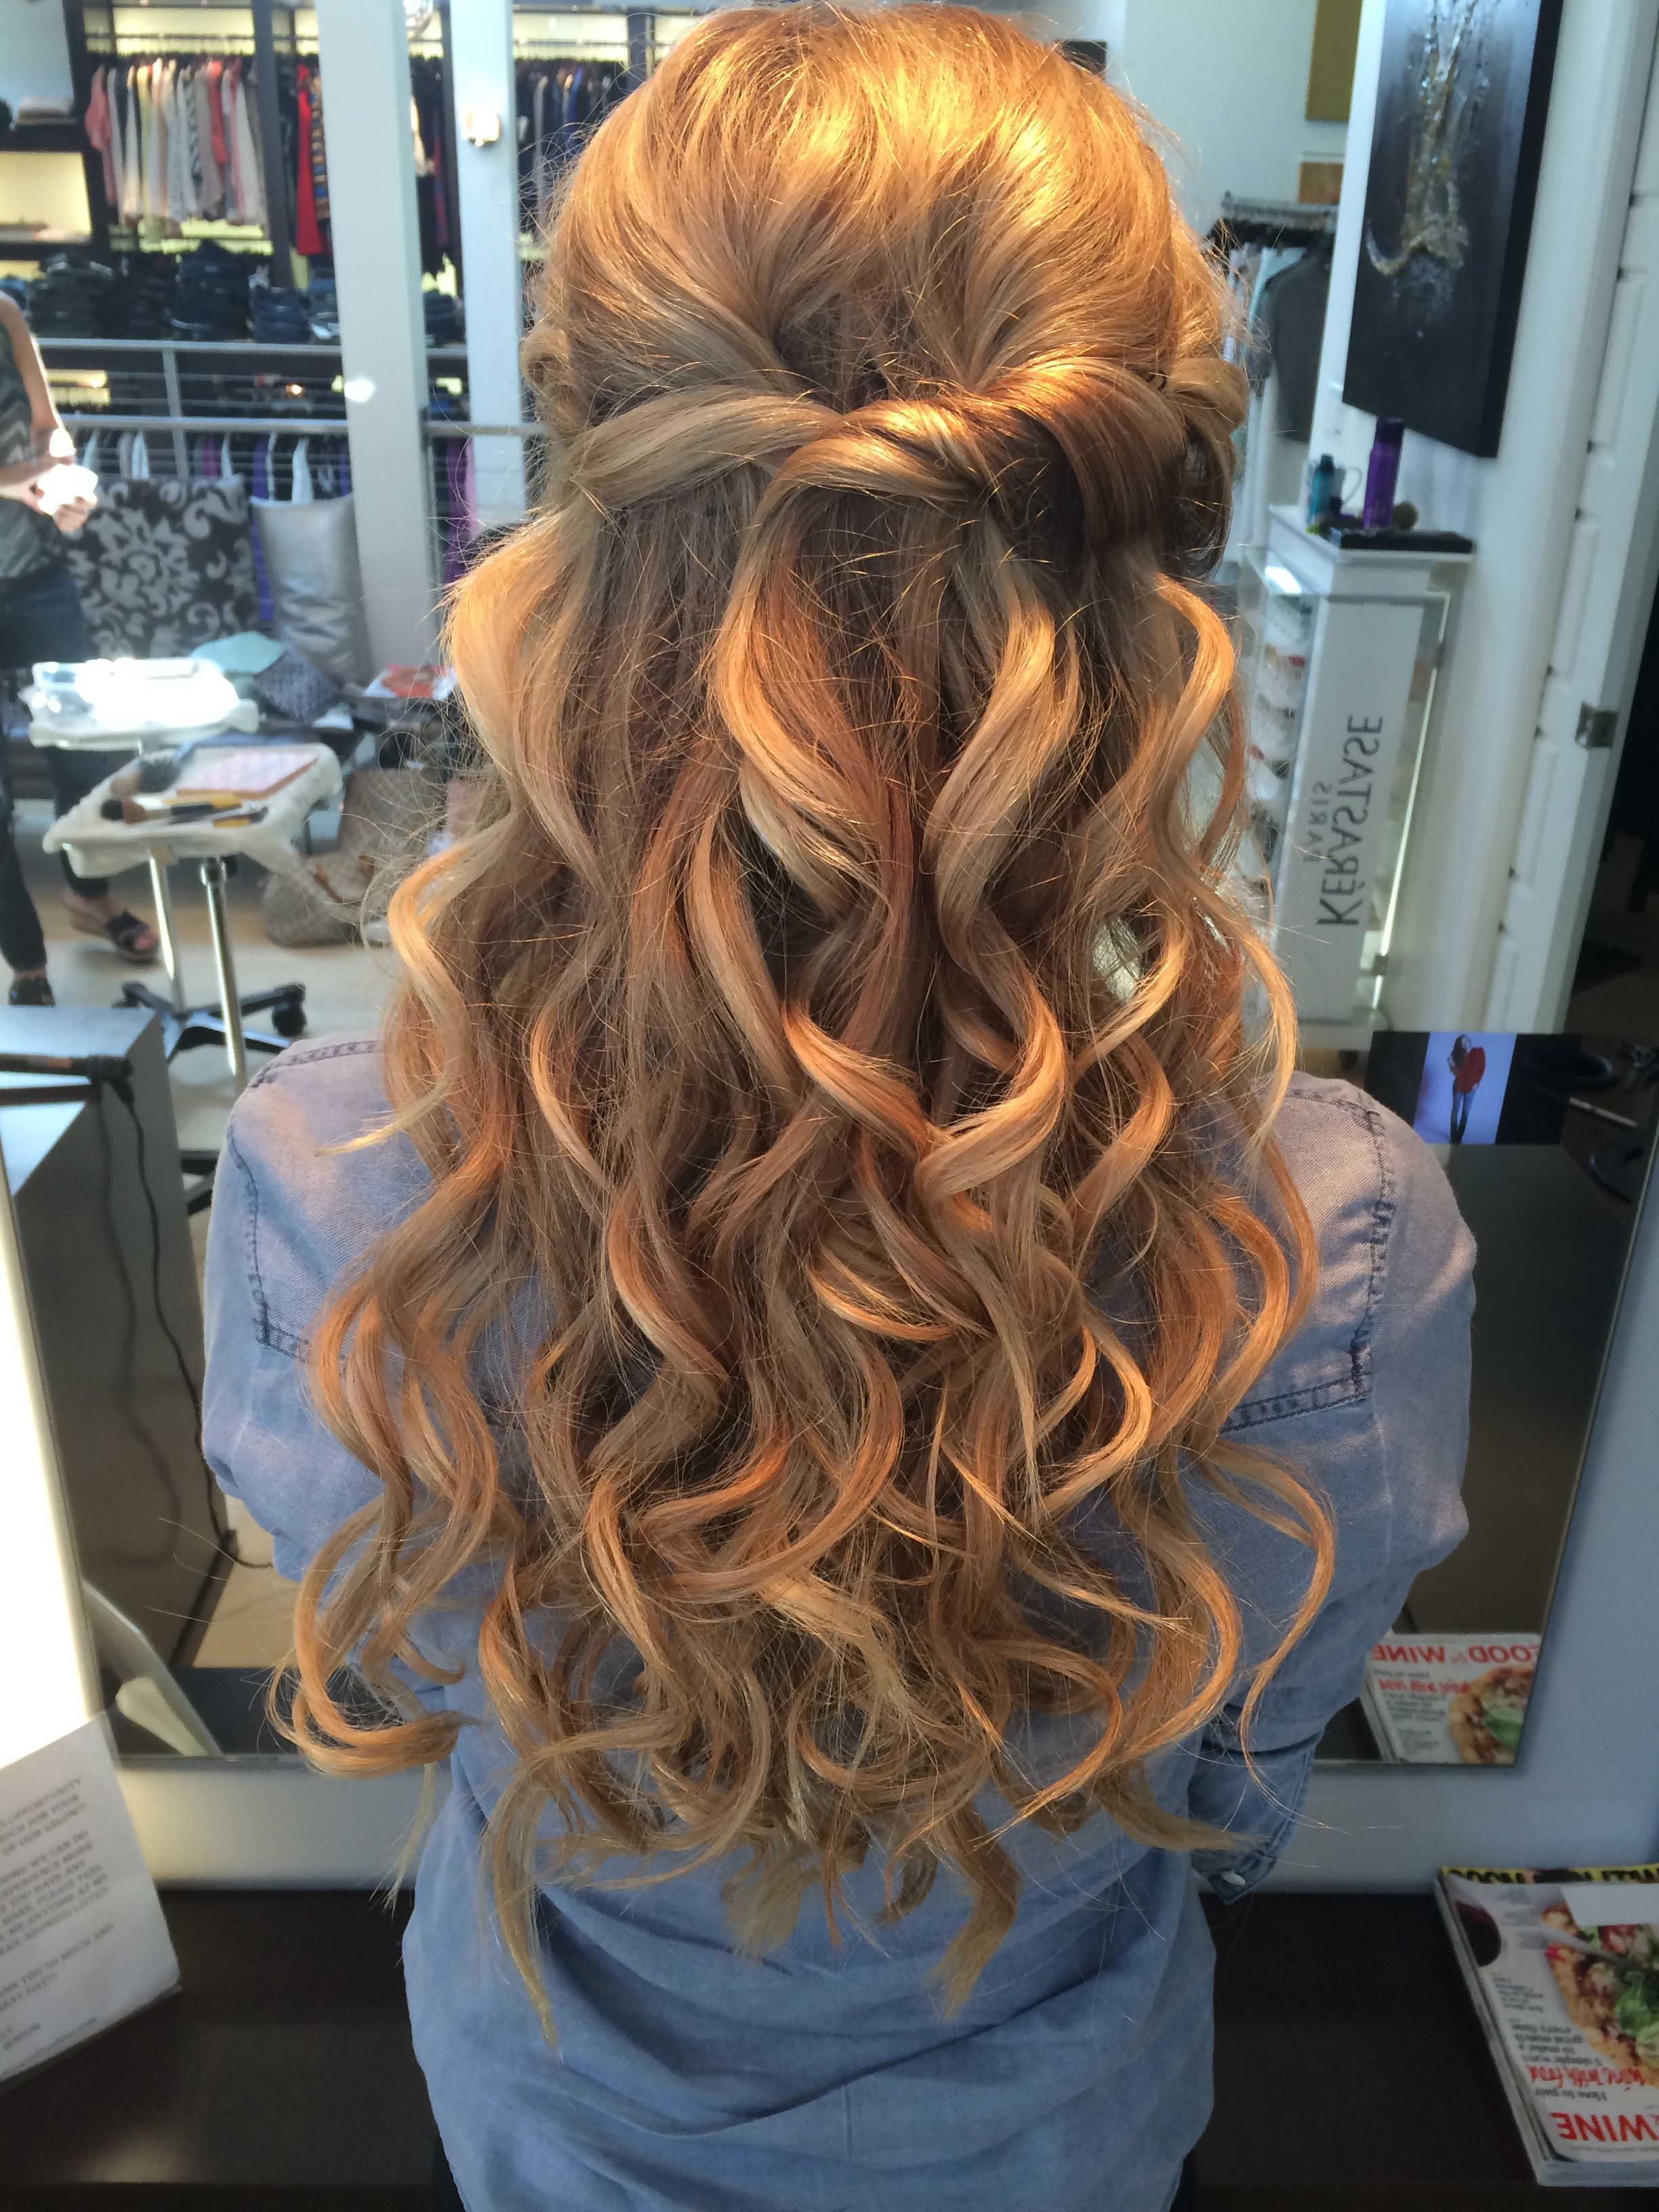 half up half down twisted hairstyle with big curls